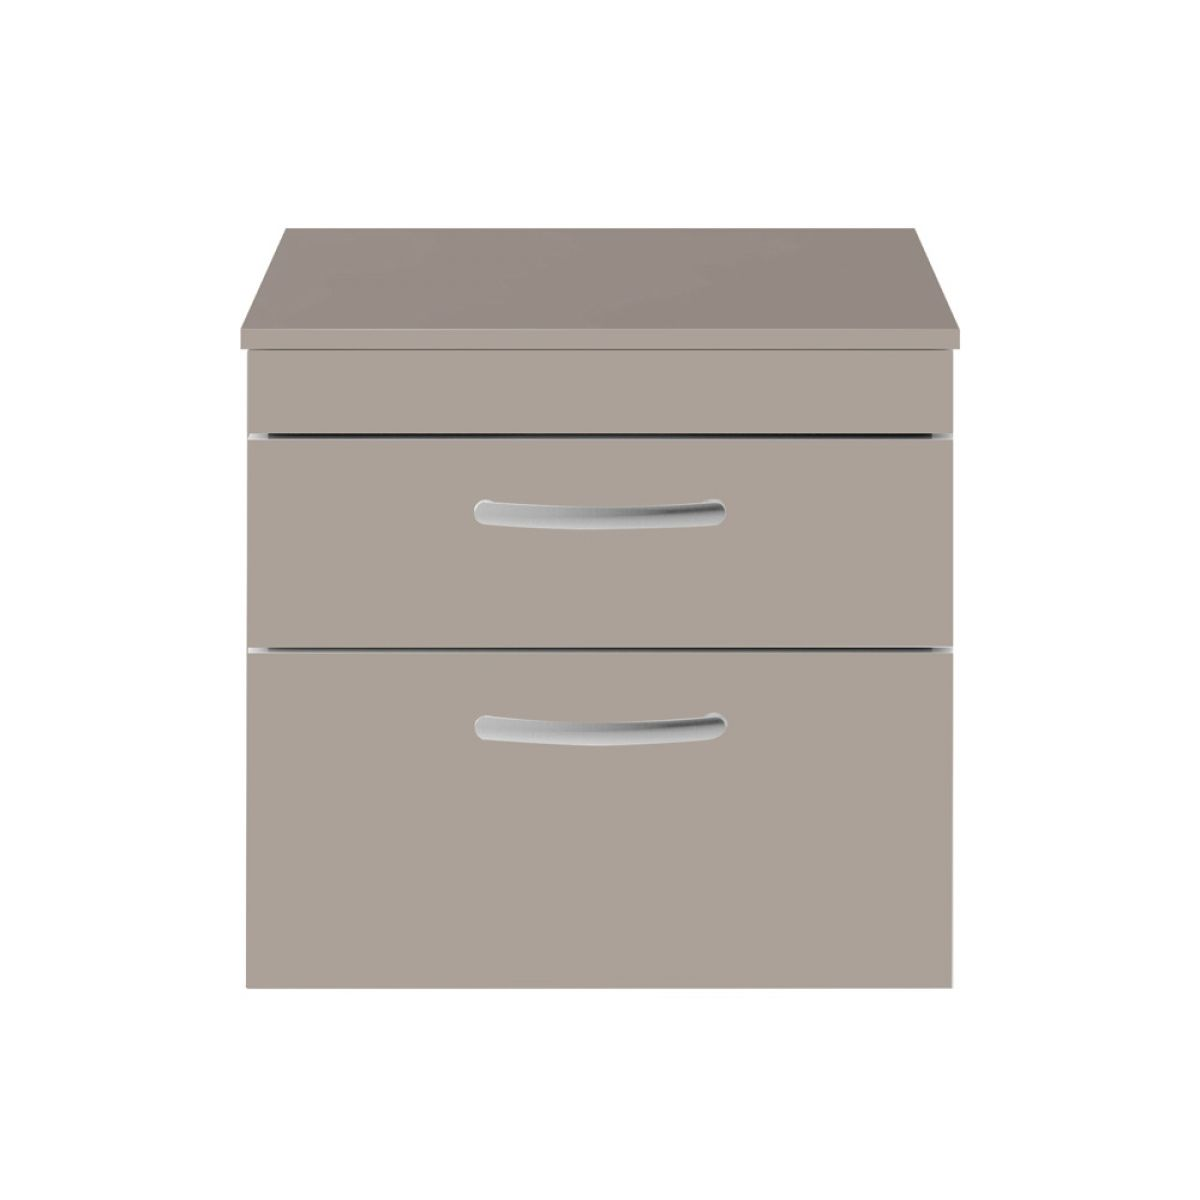 Premier Athena stone grey 2 Drawer Wall Hung Vanity Unit 600mm with Worktop